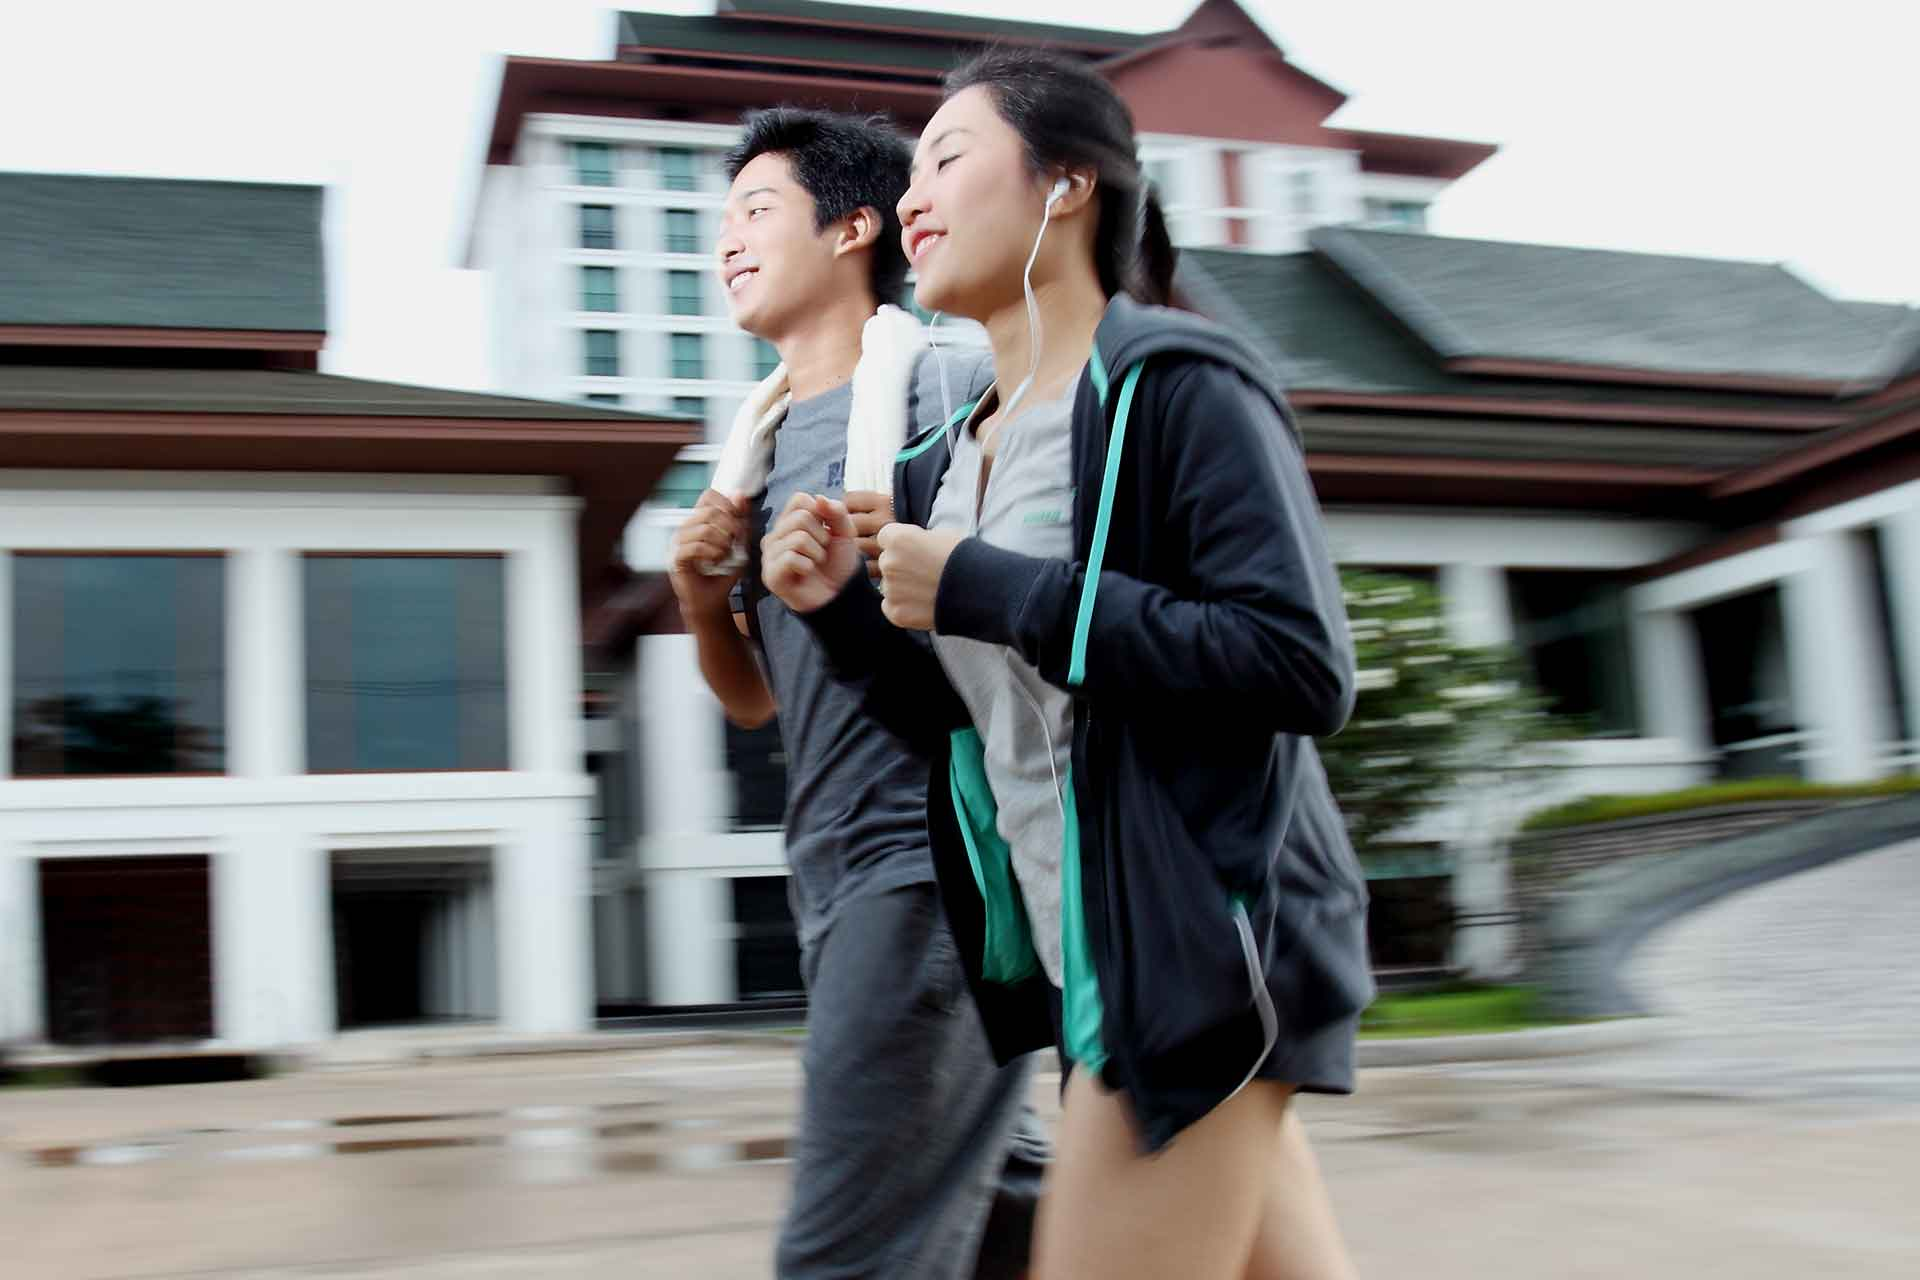 A couple jogging in Khon Kaen